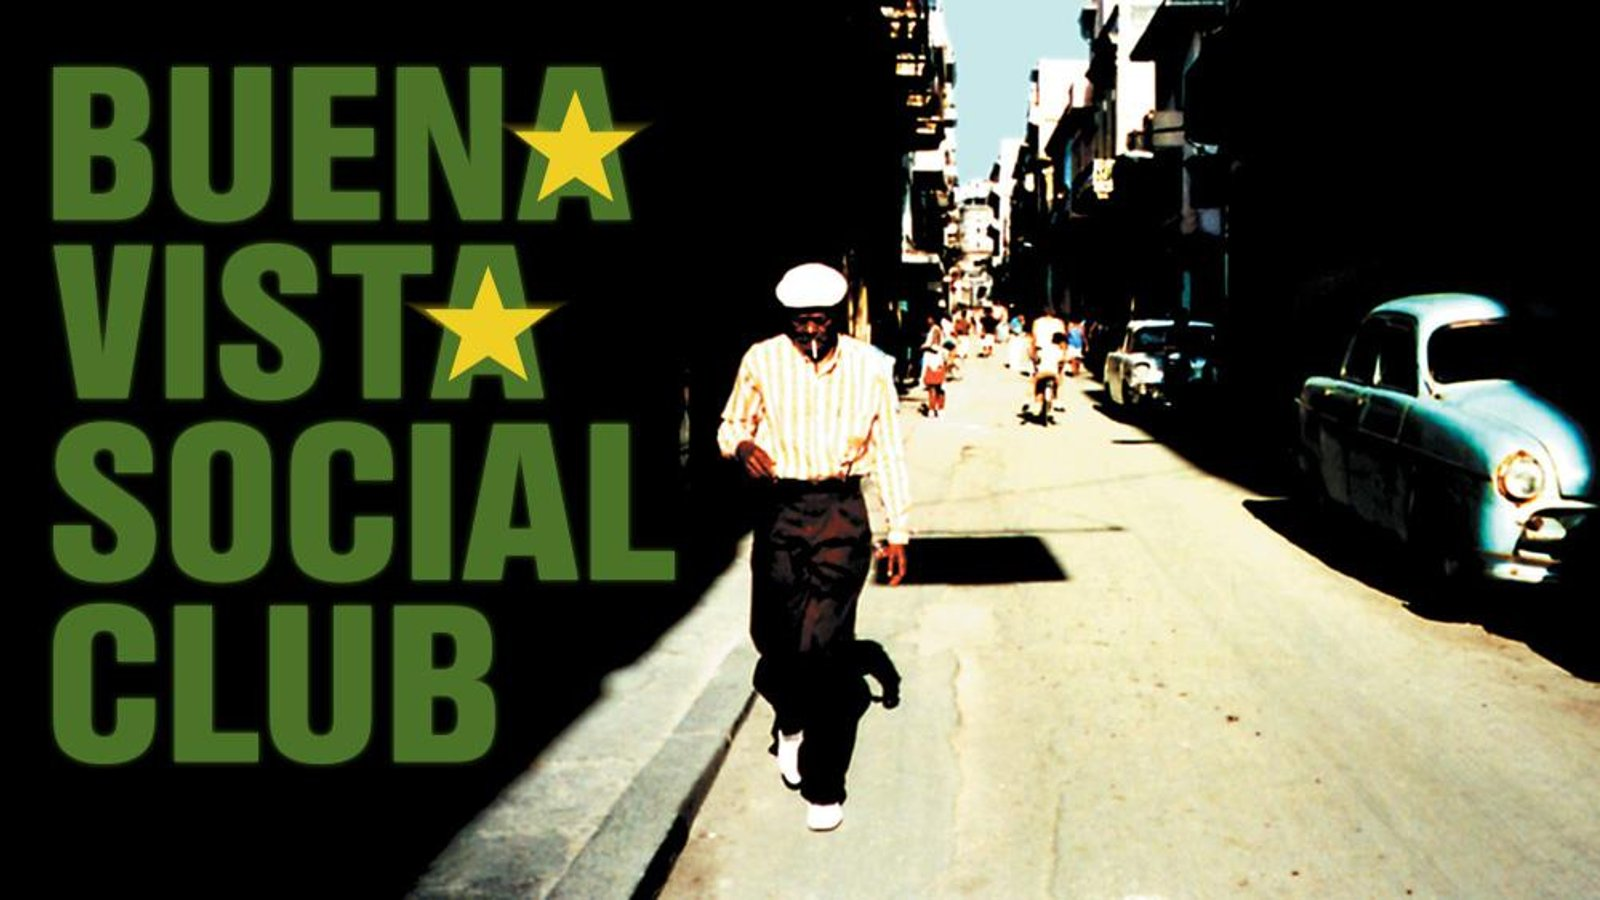 Buena Vista Social Club - Cuban Musician Legends